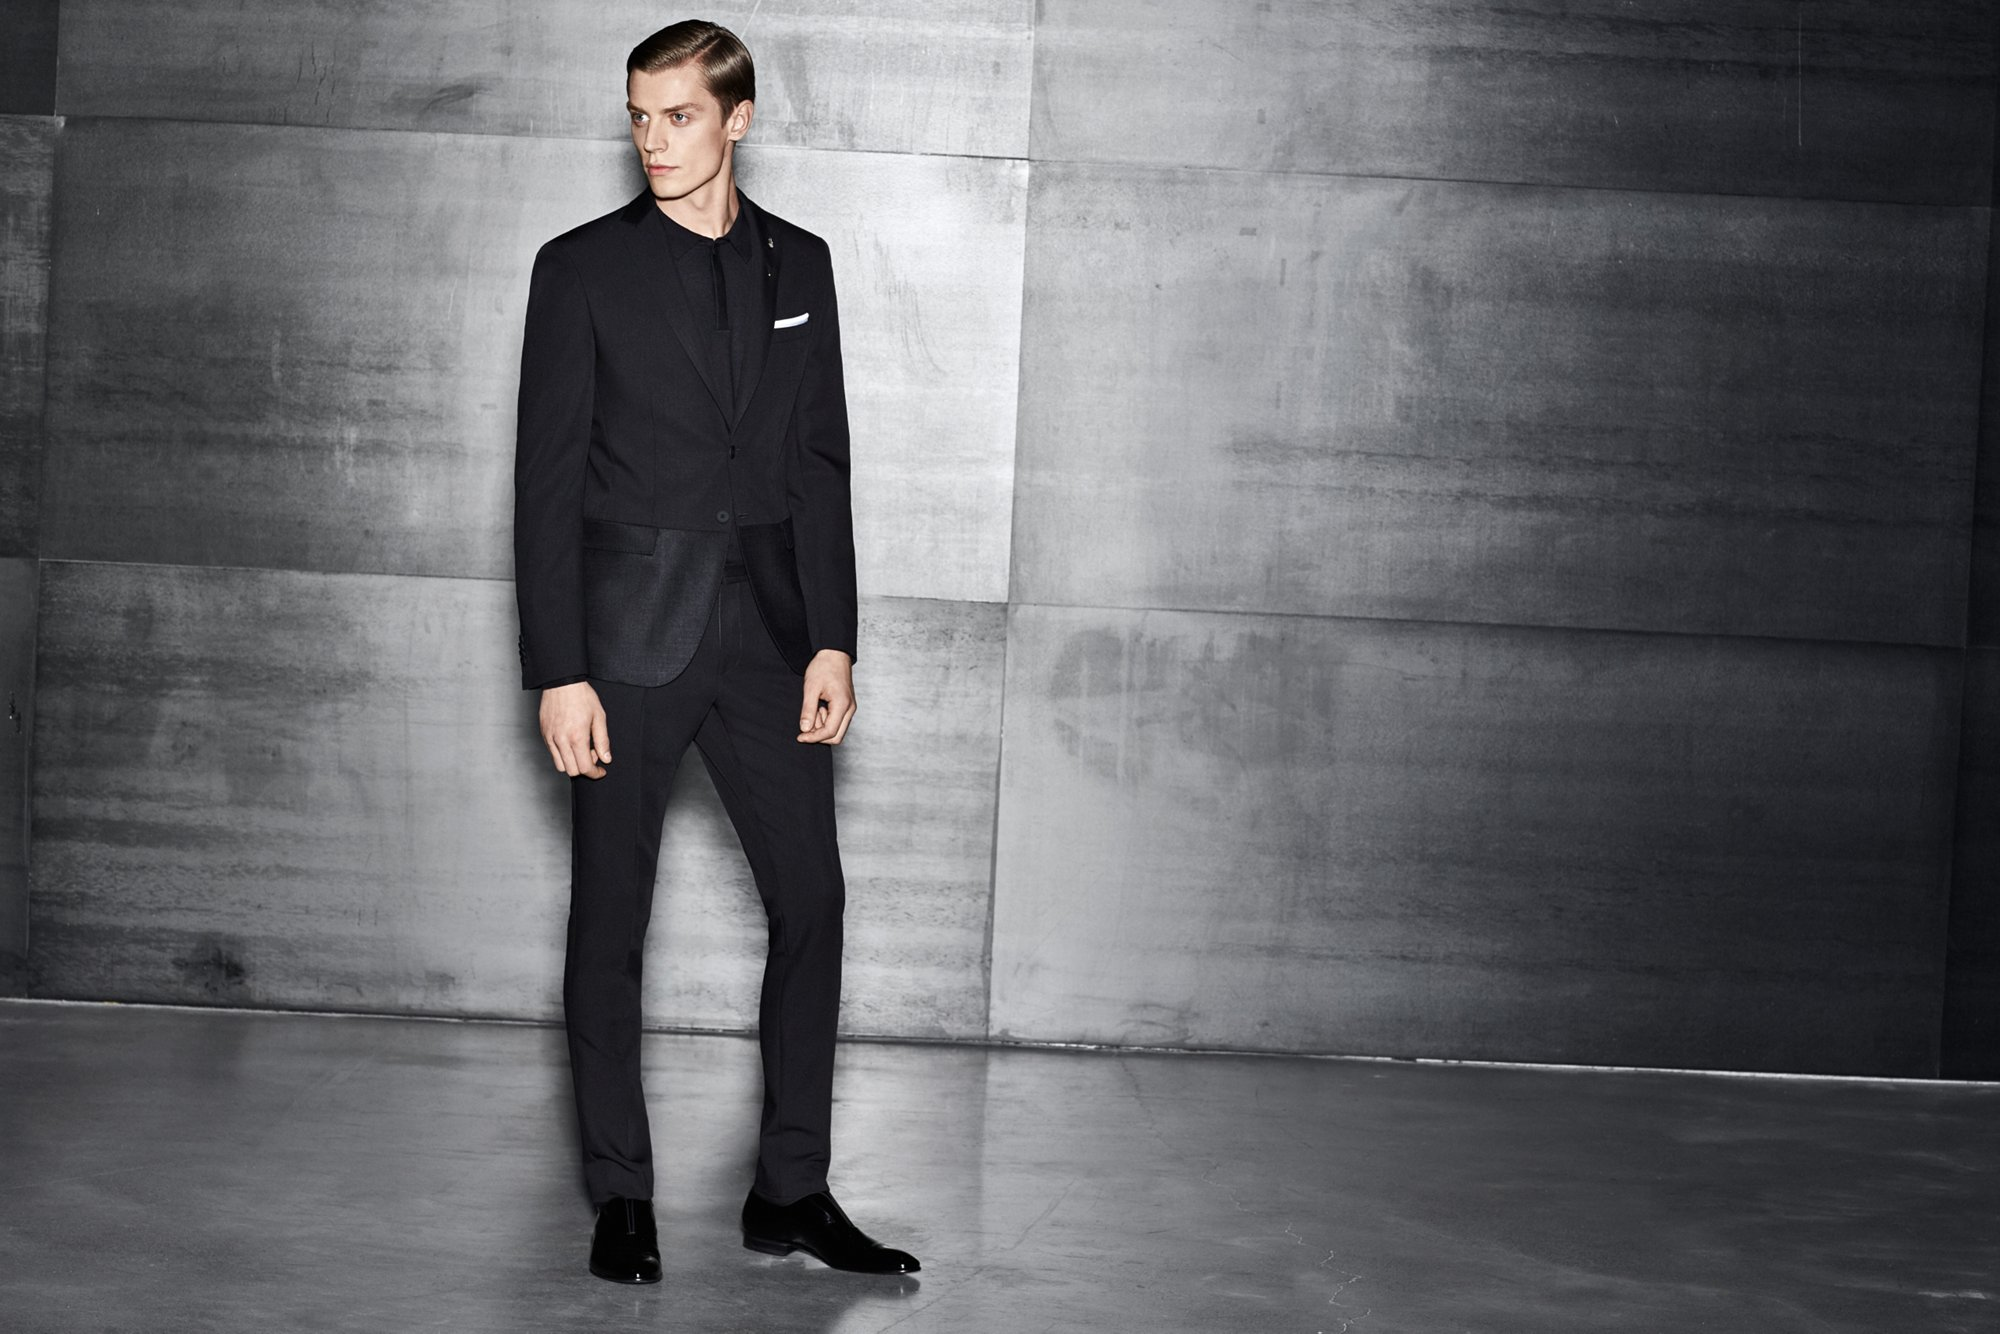 Black jacket over black knitwear and black trousers with black shoes by BOSS